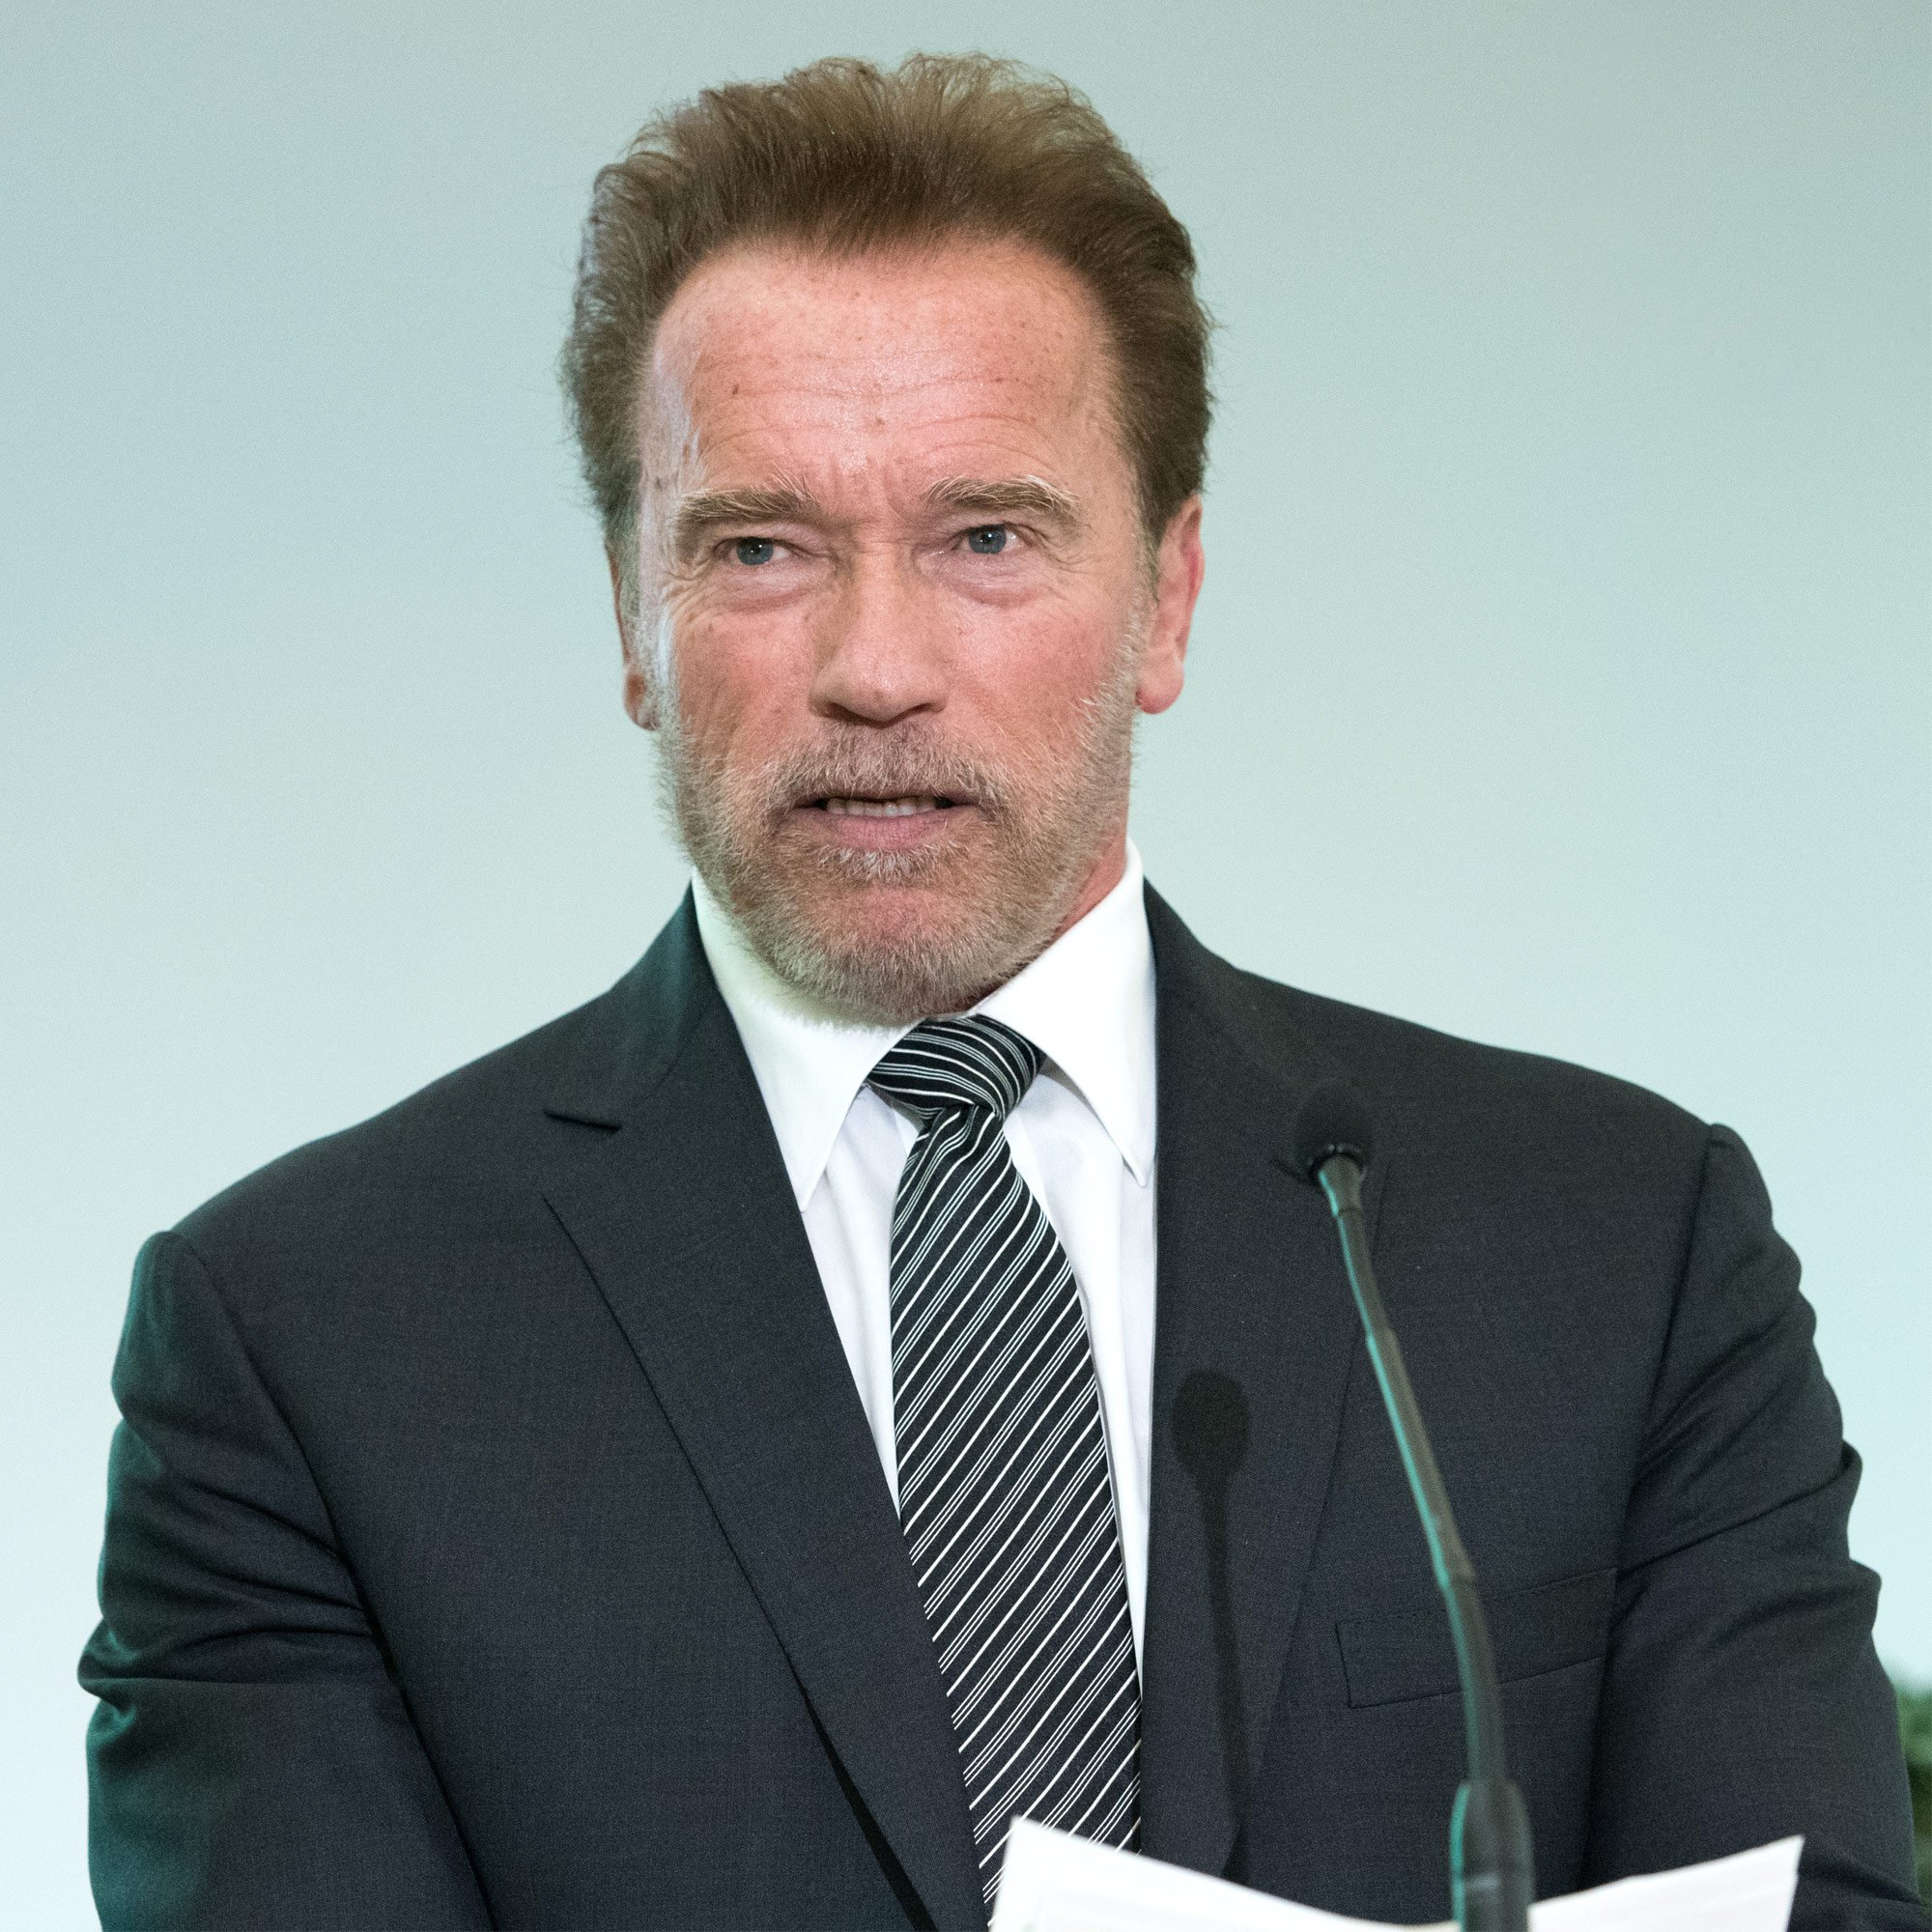 Arnold Schwarzenegger calls for stimulus funds to be used to 'remake societies'